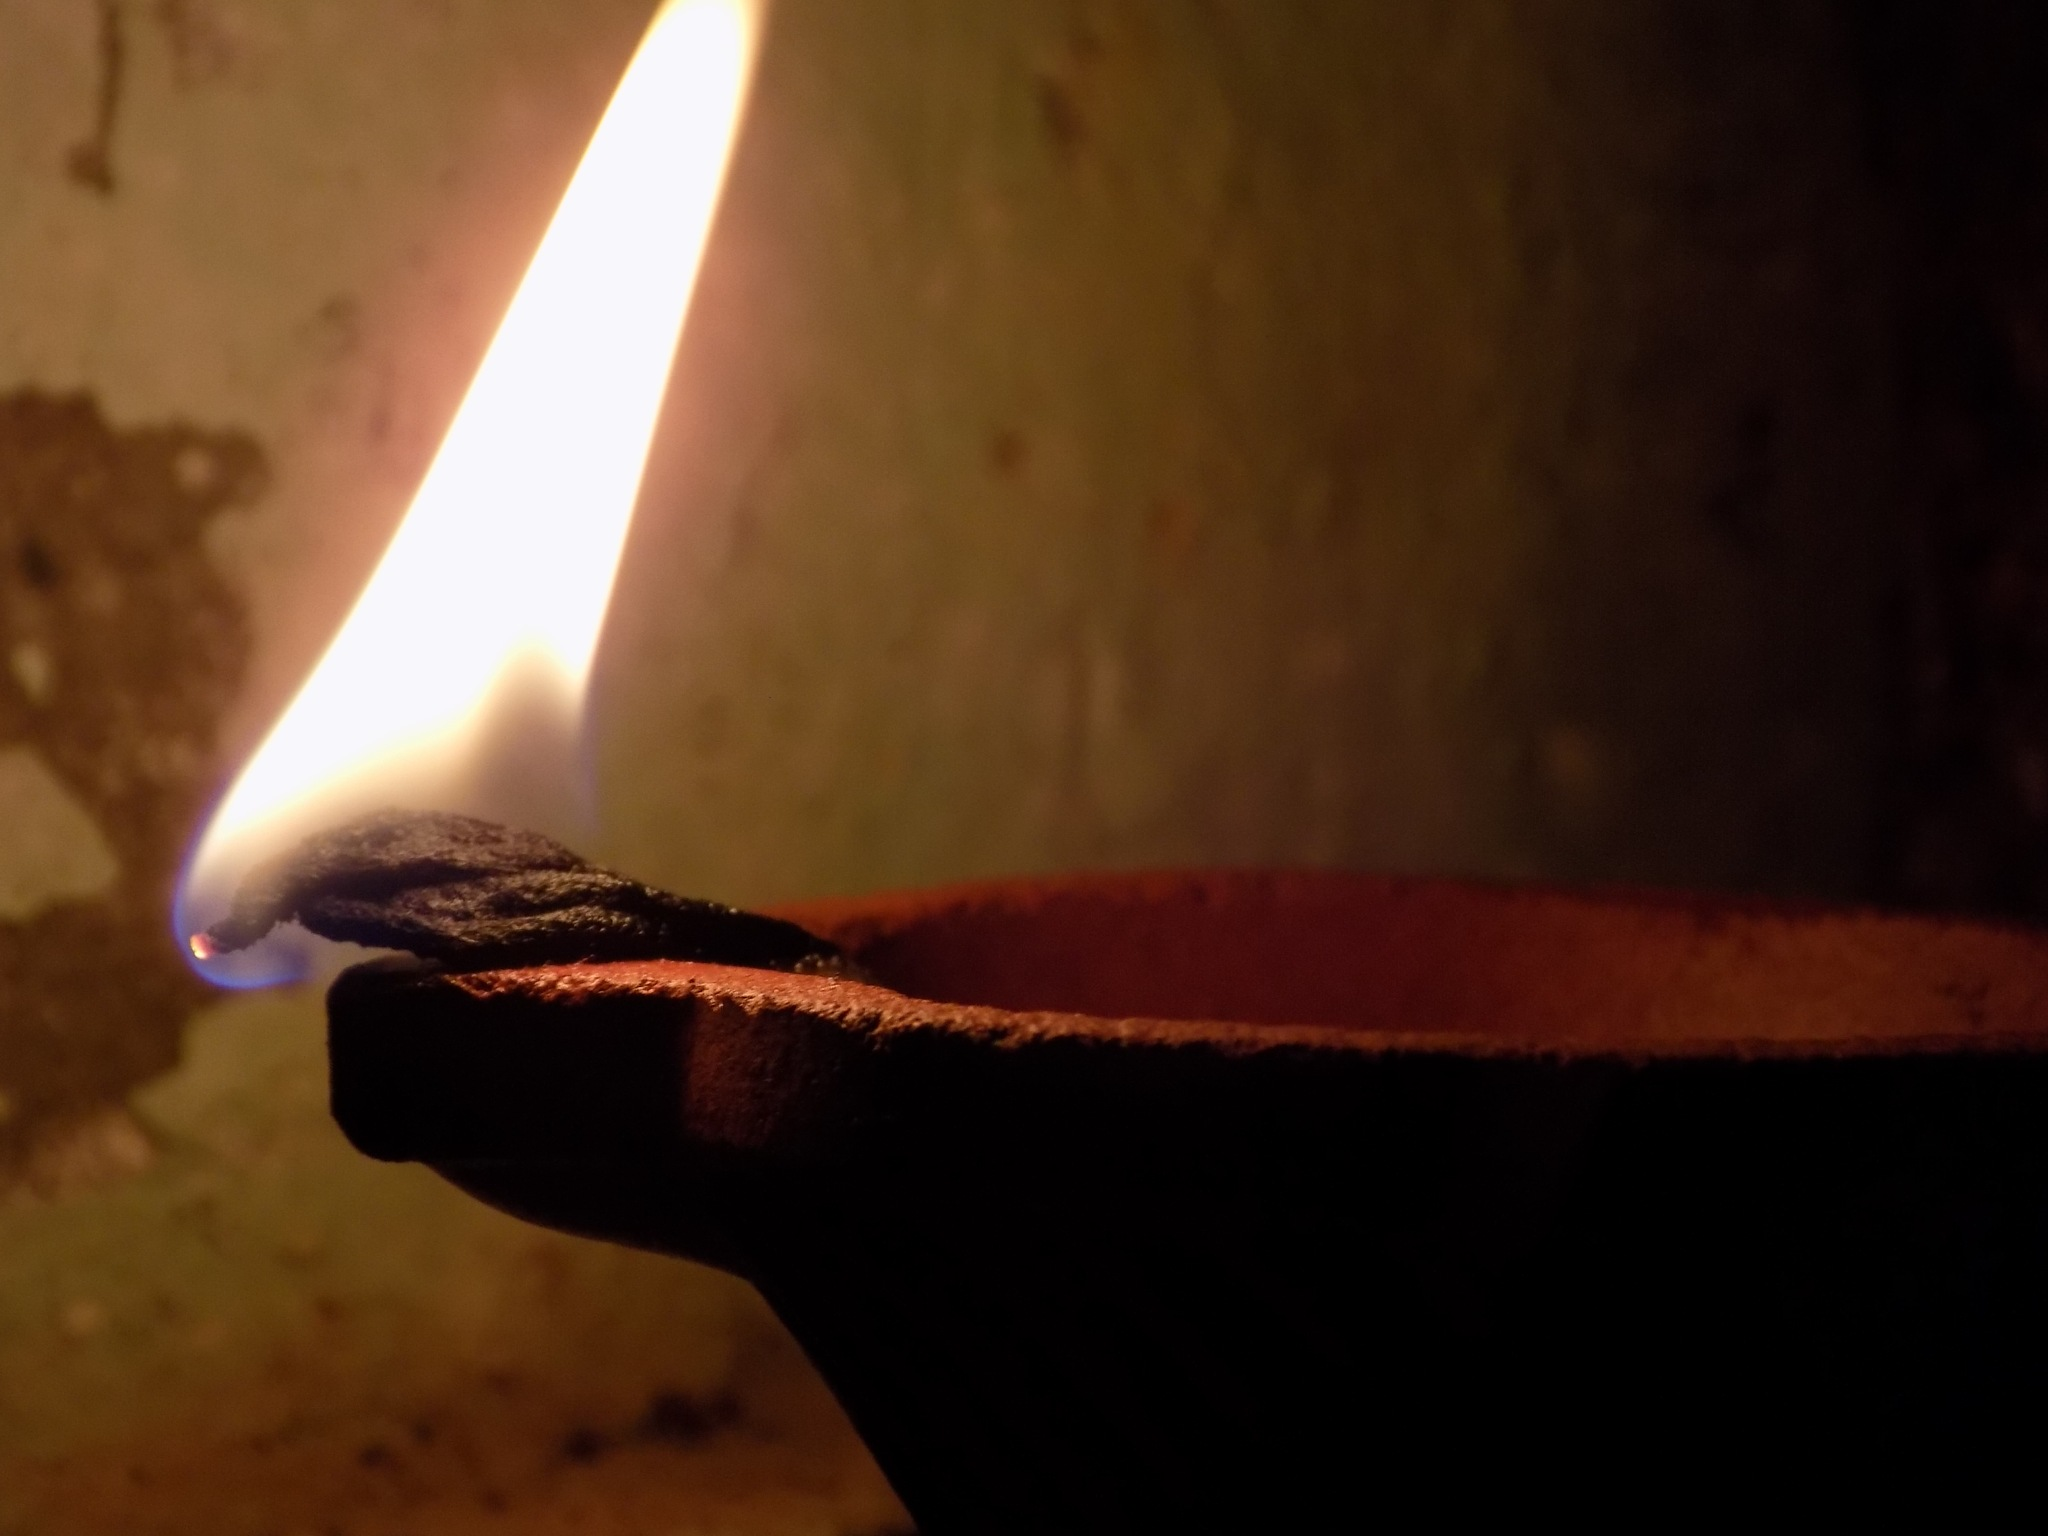 Oil Lamp by Chandramoulieswar